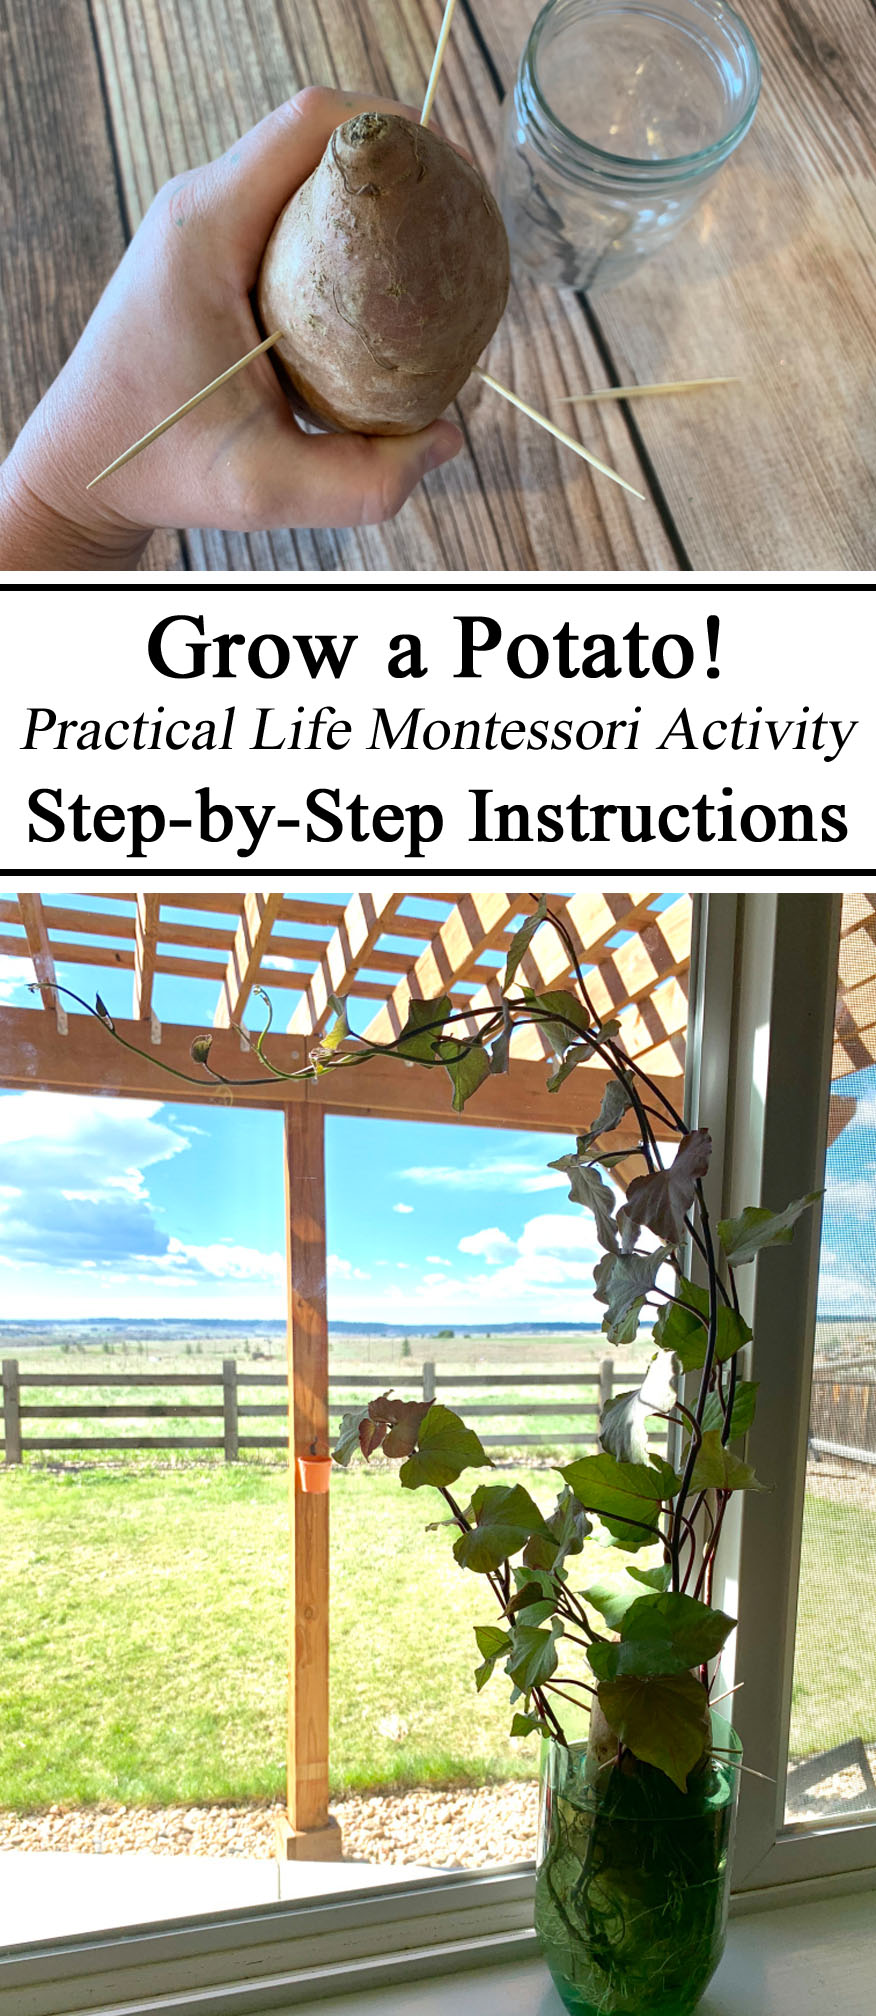 Montessori, Inspired, Hands on Learning, Activity, Ireland, Great Potato Famine, Botany, STEM Education, STEAM, Practical Life, Preschool, Kindergarten, Educational, Learning, Gardening, PreK, Waldorf, Unschooling, Unschool